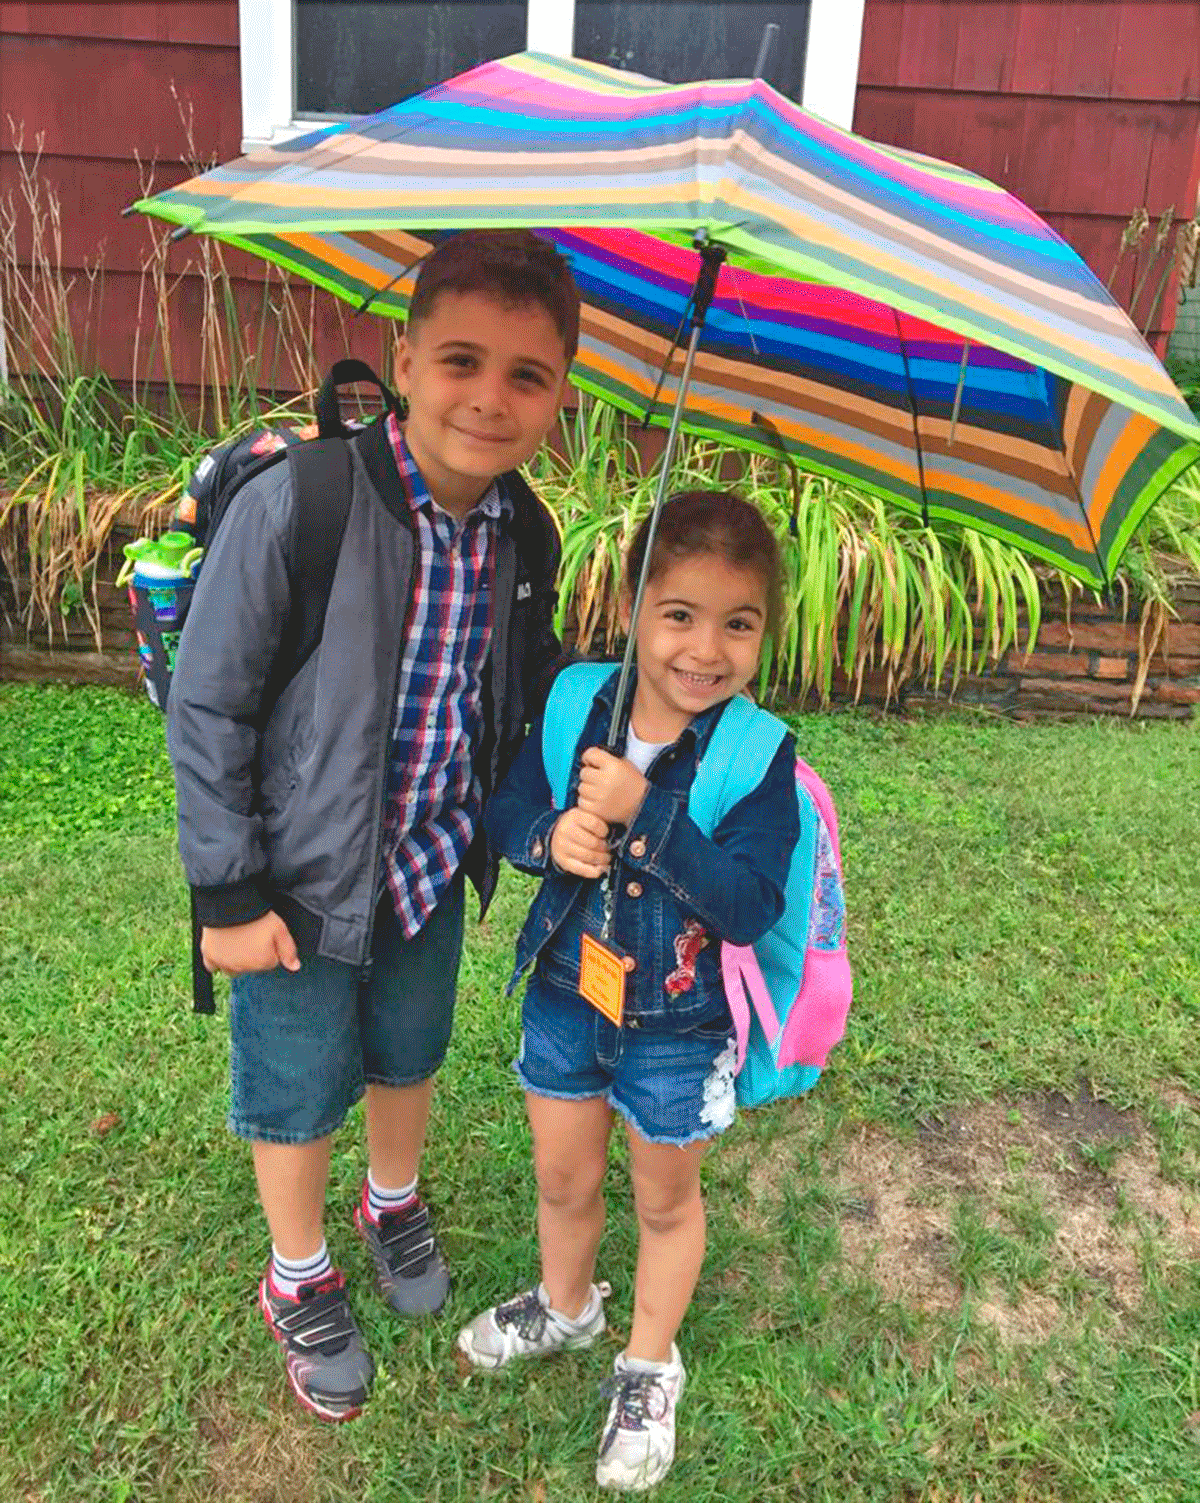 Second grader, Matar Almomani, and his sister Jood, kindergartener,  stay dry under their umbrella before starting their first day of school at Potsdam Central School. Submitted photo by Heba Almomani.